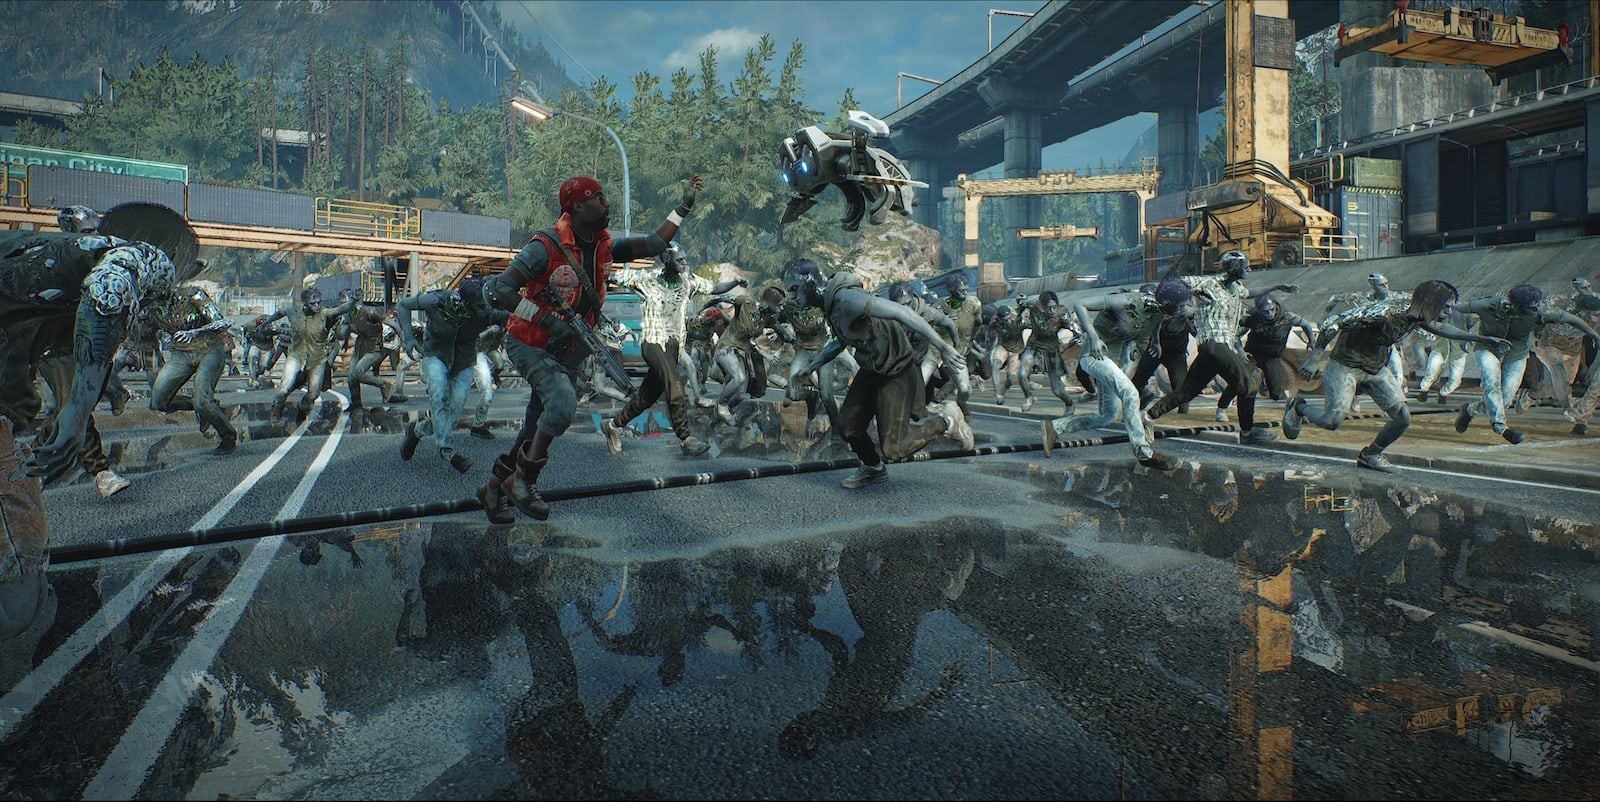 Tencent's own battle royale game has hackable zombies